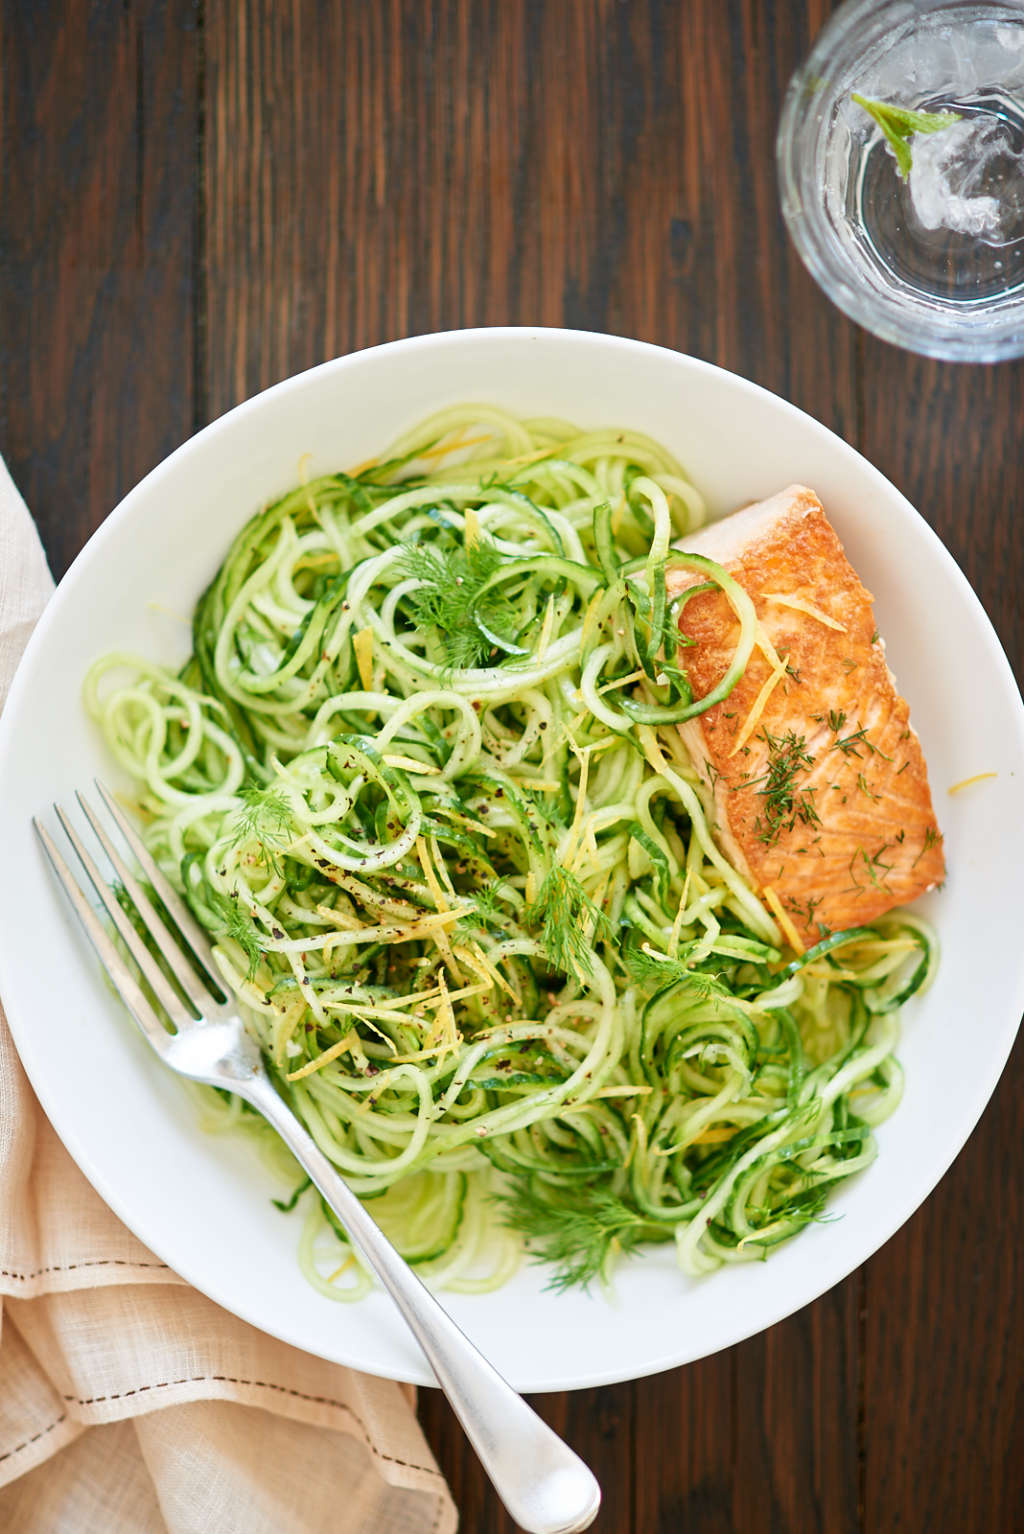 Stay Cool with This Lemon-Dill Cucumber Noodle Salad